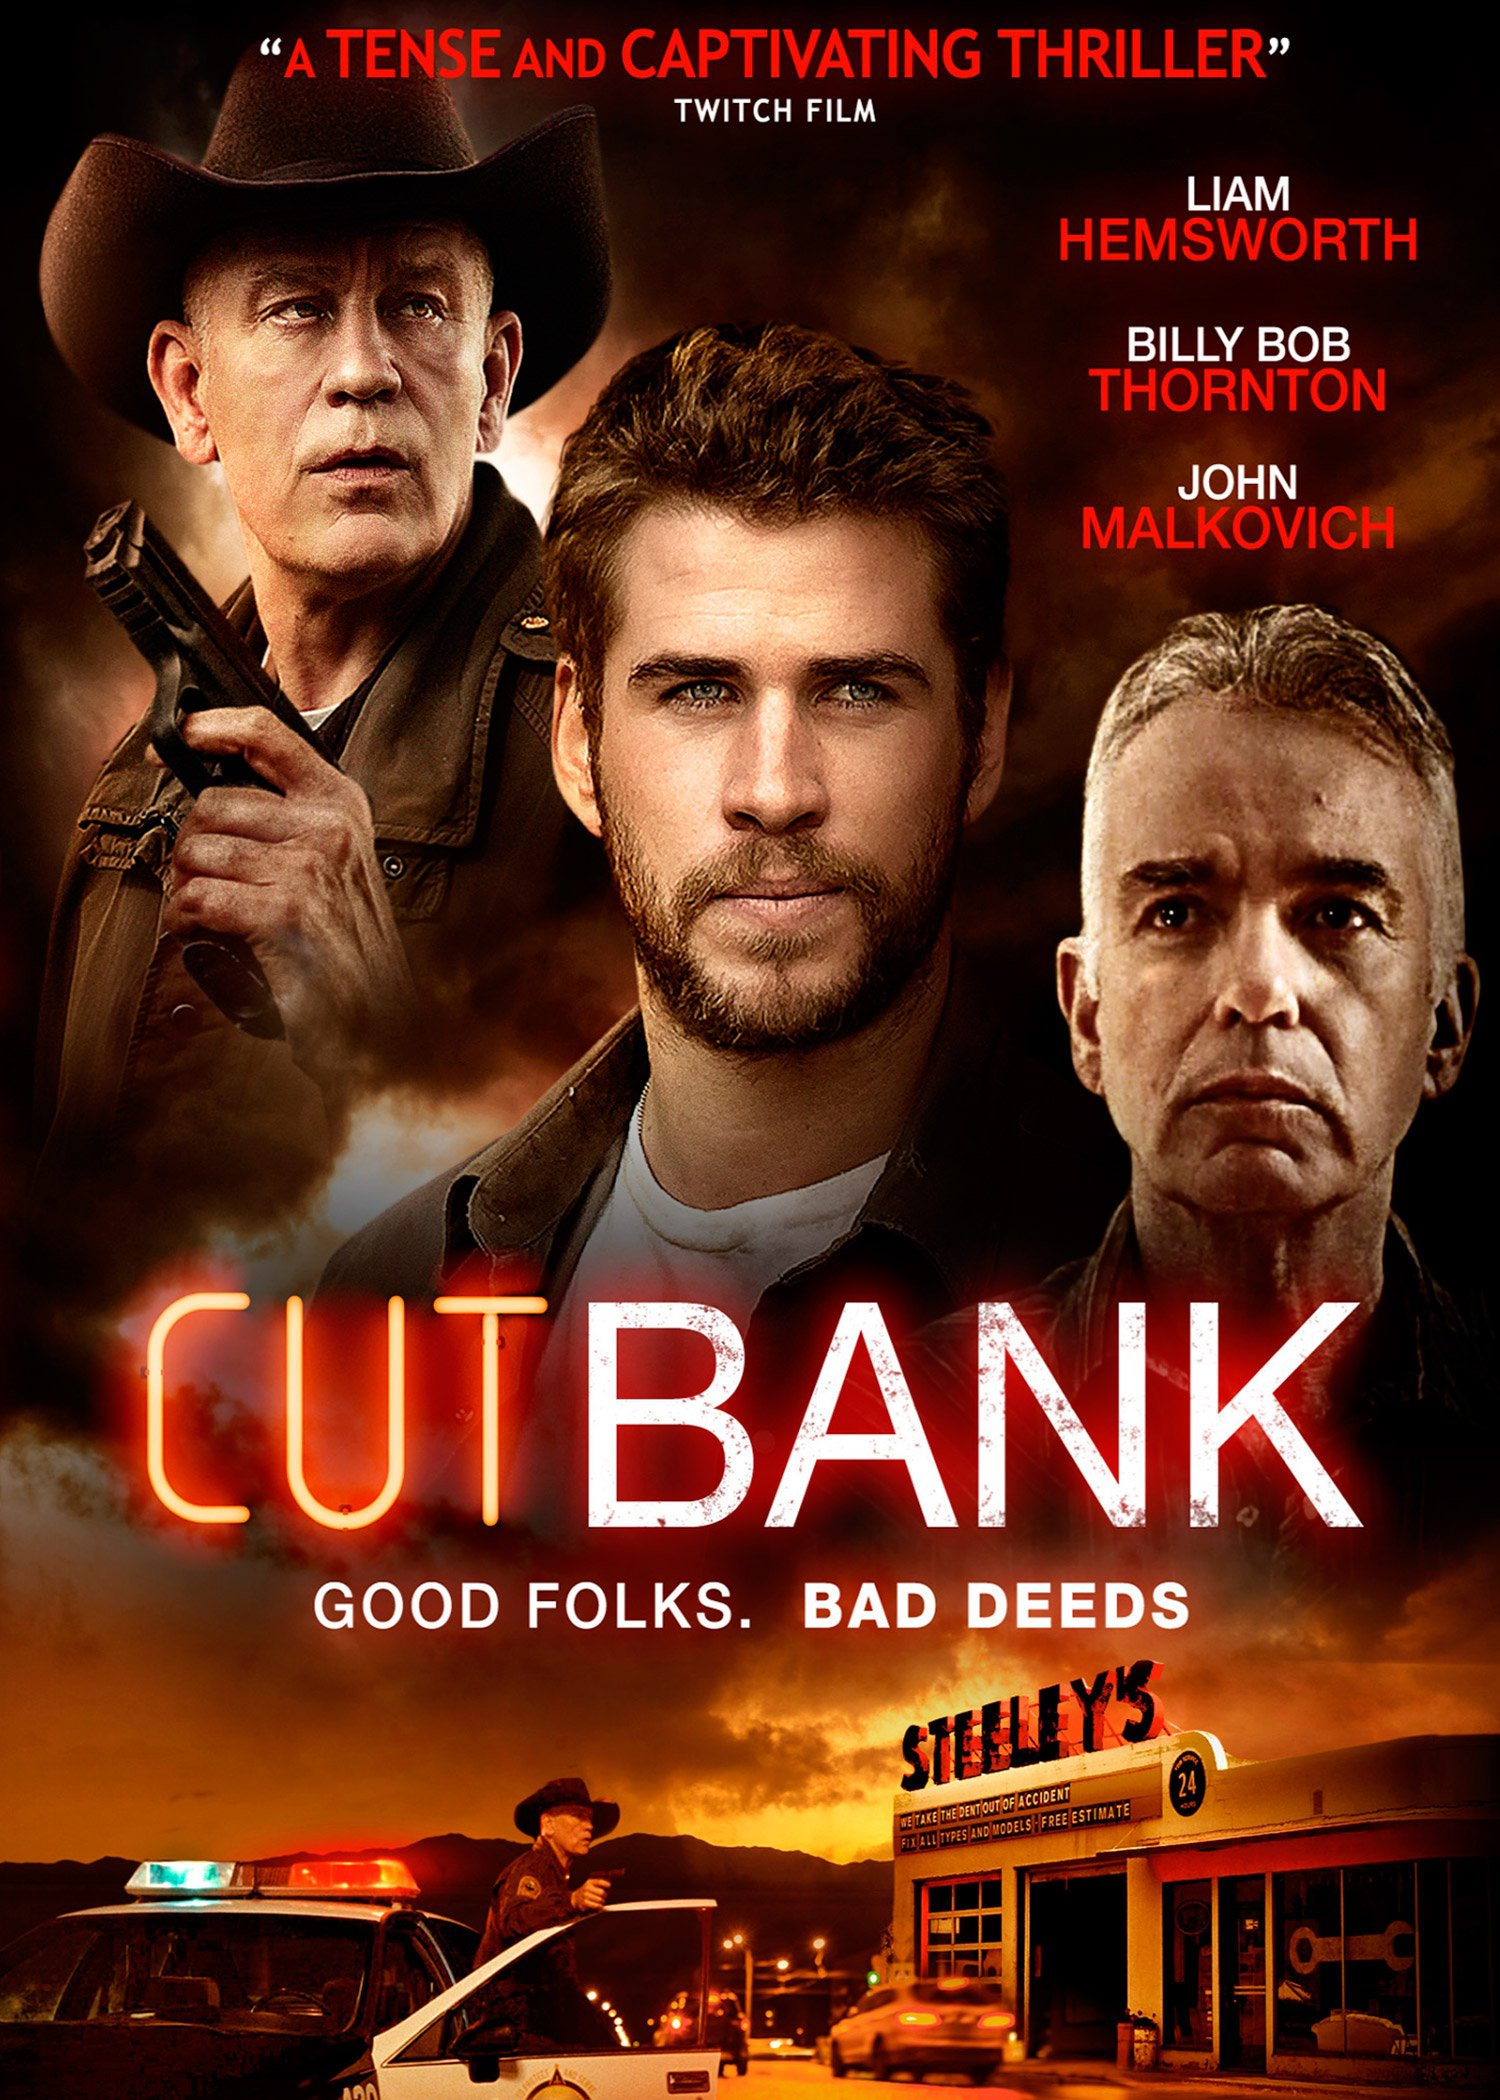 Cut Bank Official Trailer #1 (2015) - Liam ... - YouTube